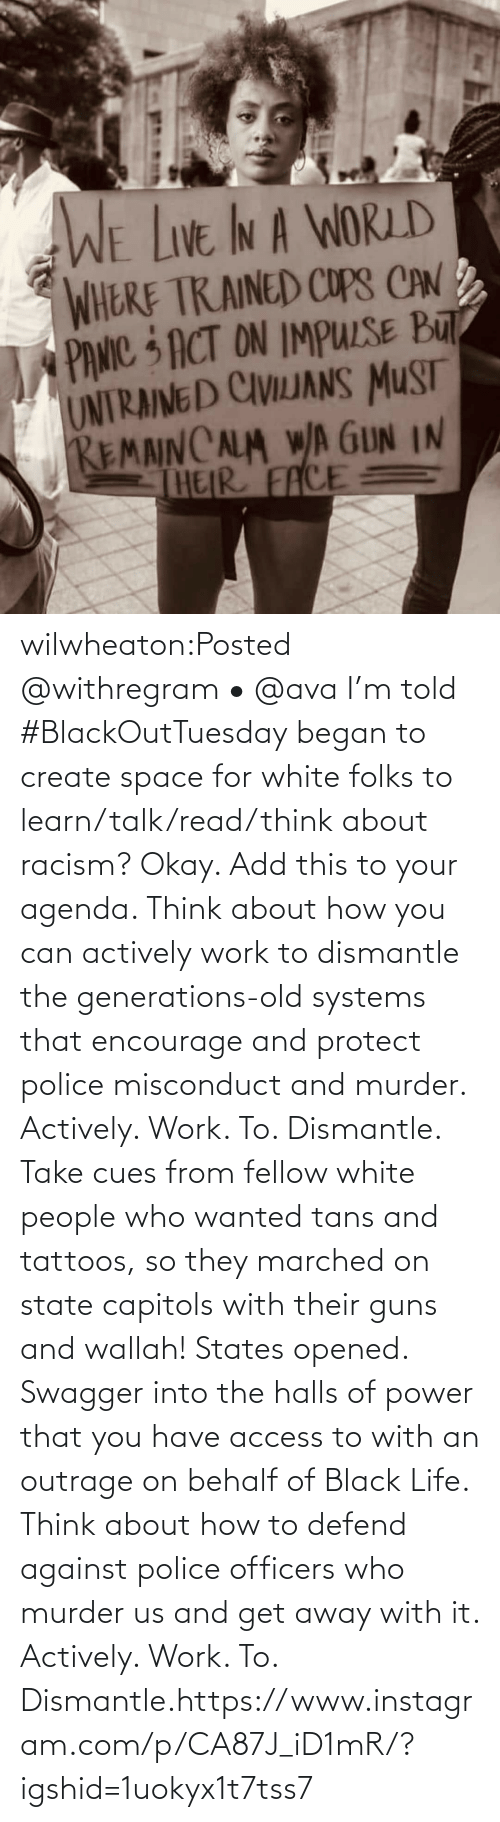 Tumblr Com: wilwheaton:Posted @withregram • @ava I'm told #BlackOutTuesday began to create space for white folks to learn/talk/read/think about racism? Okay. Add this to your agenda. Think about how you can actively work to dismantle the generations-old systems that encourage and protect police misconduct and murder. Actively. Work. To. Dismantle. Take cues from fellow white people who wanted tans and tattoos, so they marched on state capitols with their guns and wallah! States opened. Swagger into the halls of power that you have access to with an outrage on behalf of Black Life. Think about how to defend against police officers who murder us and get away with it. Actively. Work. To. Dismantle.https://www.instagram.com/p/CA87J_iD1mR/?igshid=1uokyx1t7tss7